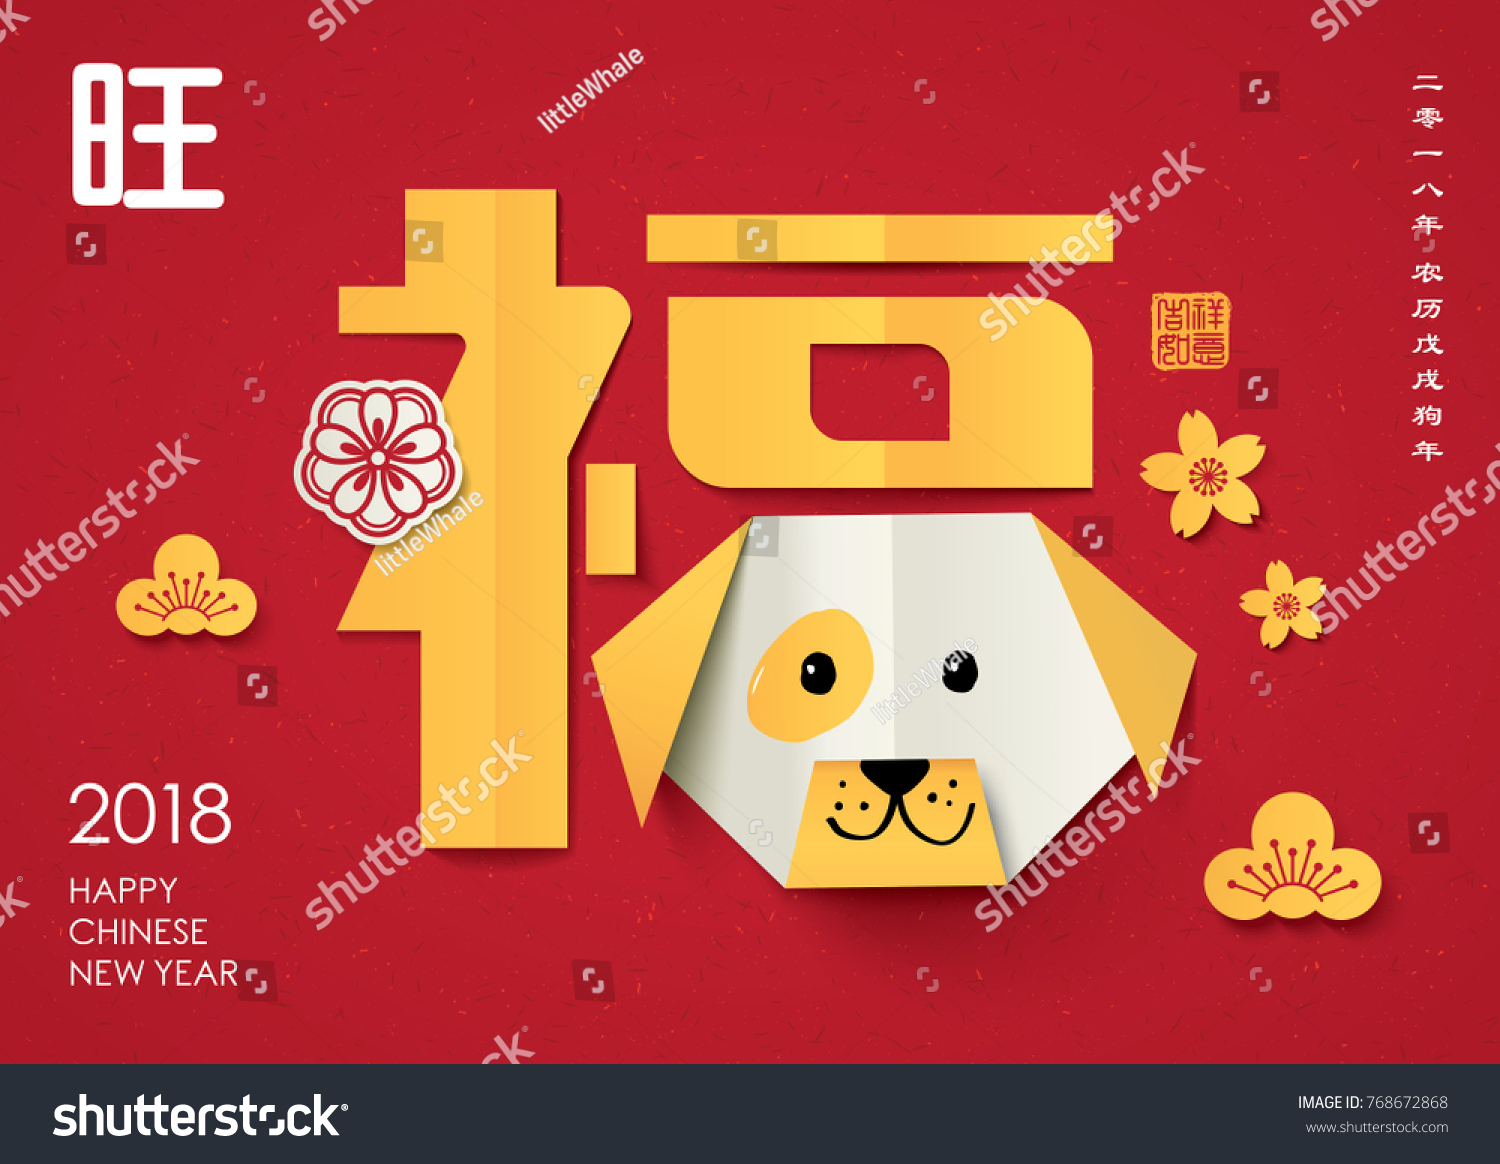 2018 chinese new year greeting card stock vector 768672868 2018 chinese new year greeting card design with origami dogs chinese translation fu kristyandbryce Choice Image